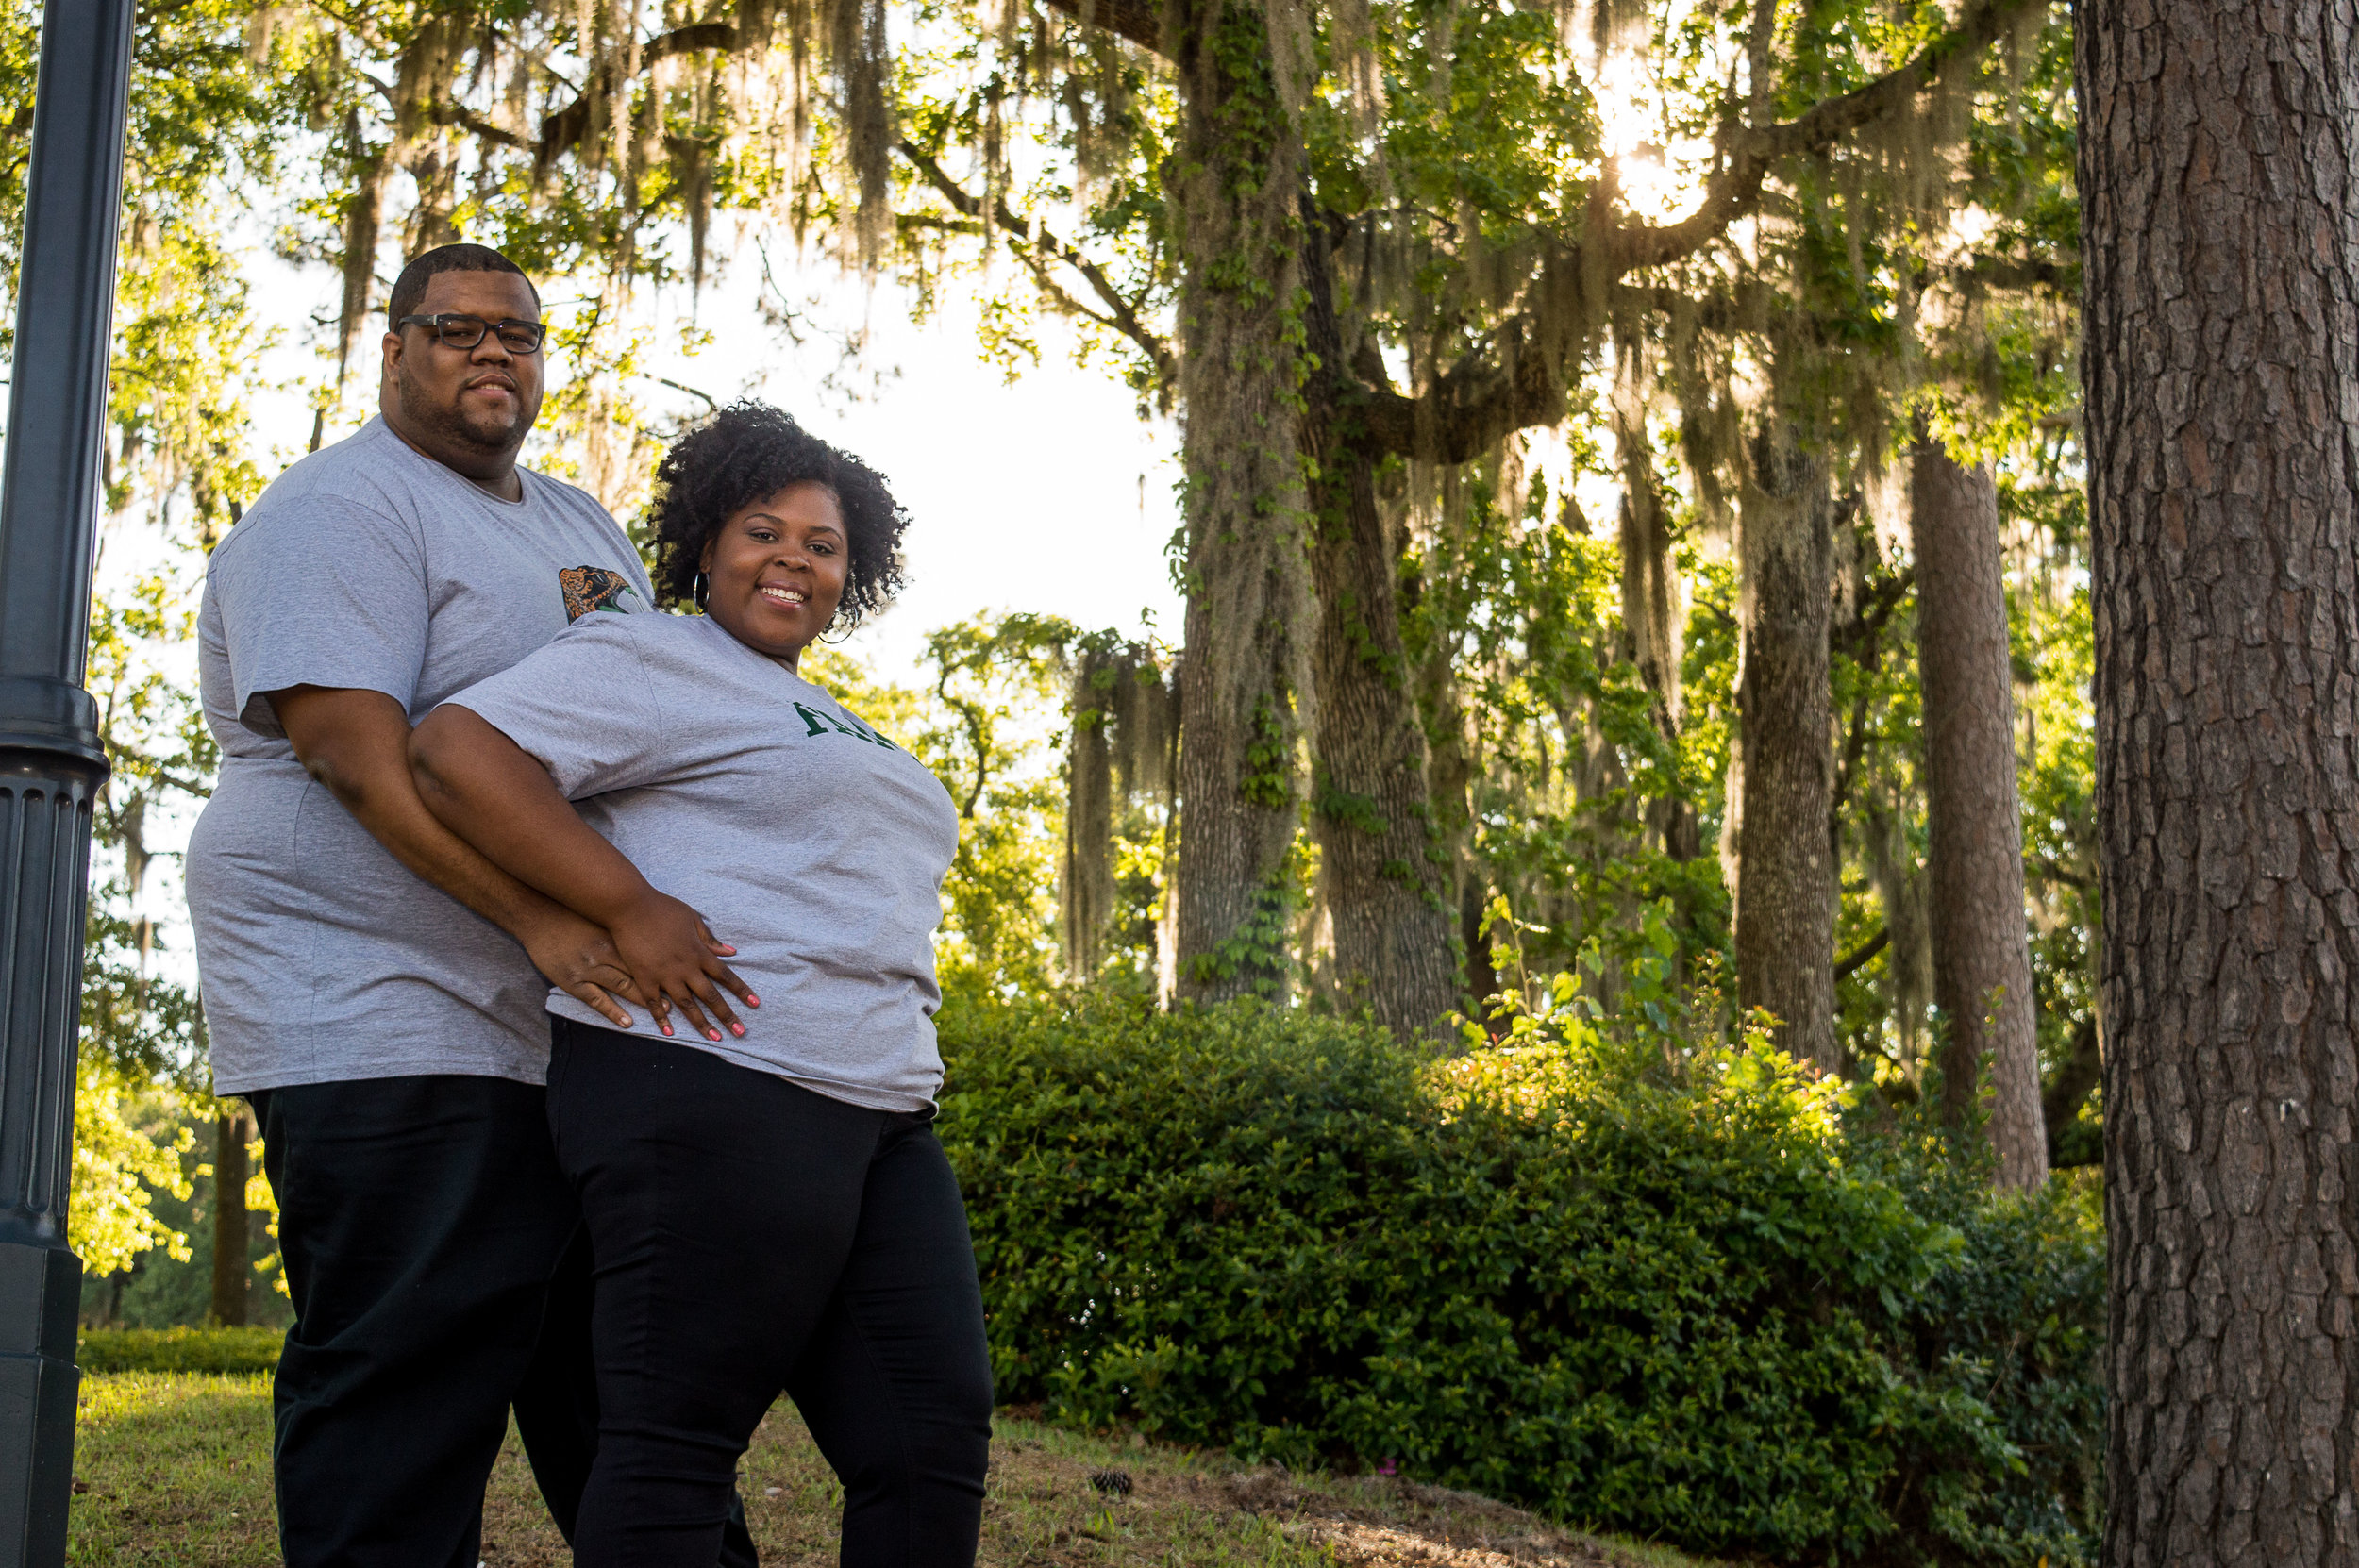 The natural scenery on the campus was gorgeous, so we had the perfect backdrop to capture the love of these two people. -